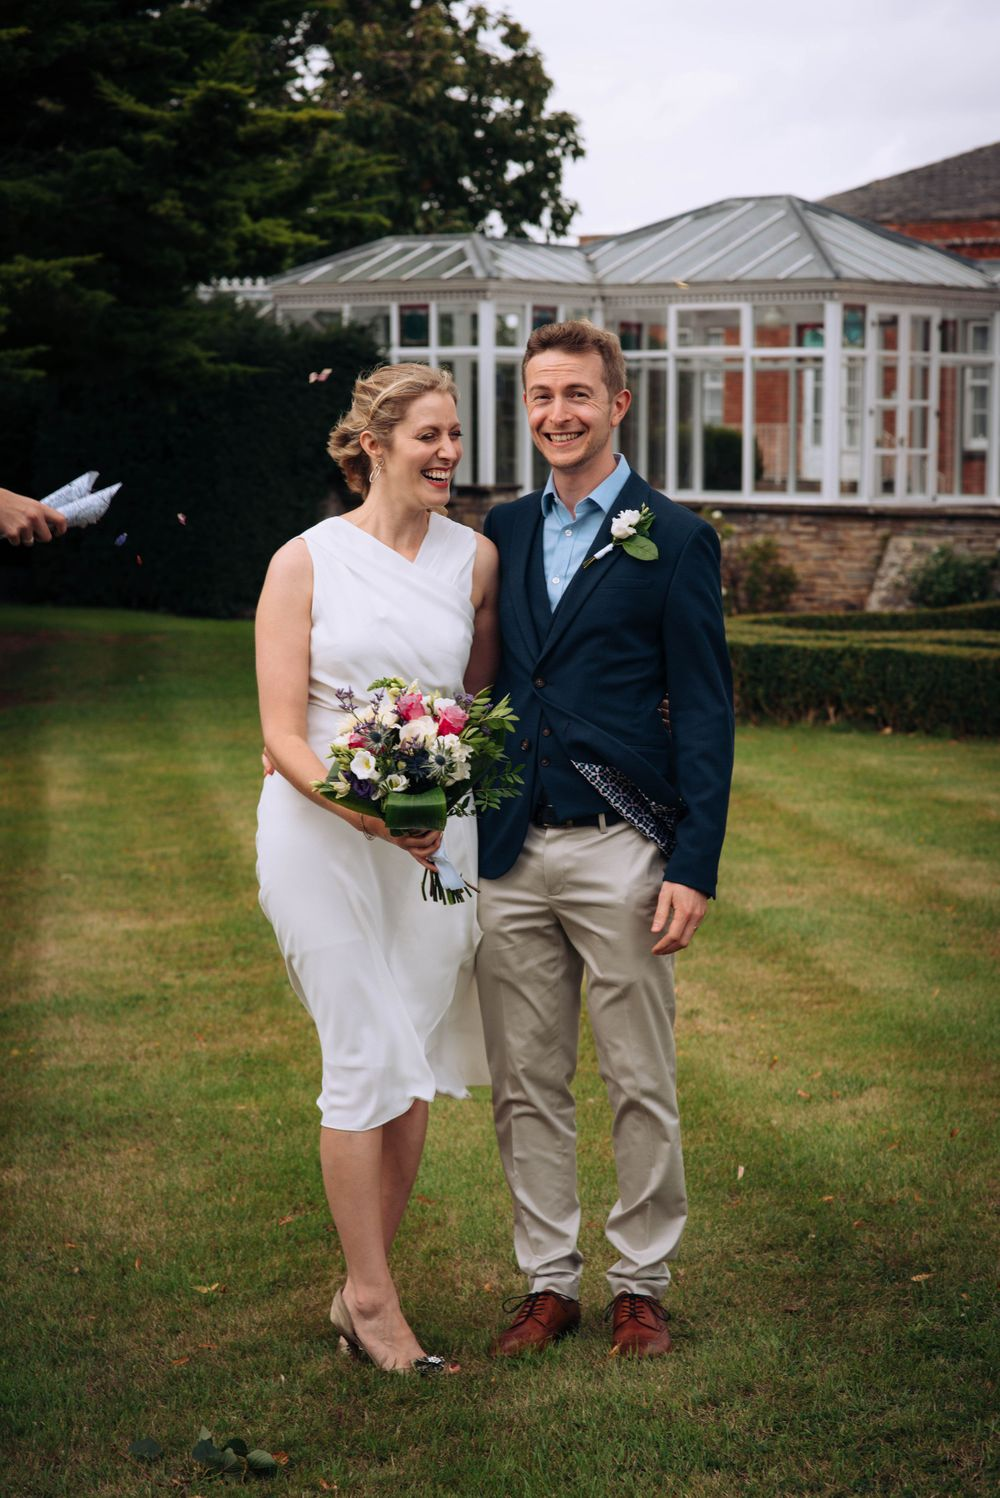 Pukrup Hall wedding by Zara Davis Photography, Gloucestershire windy day